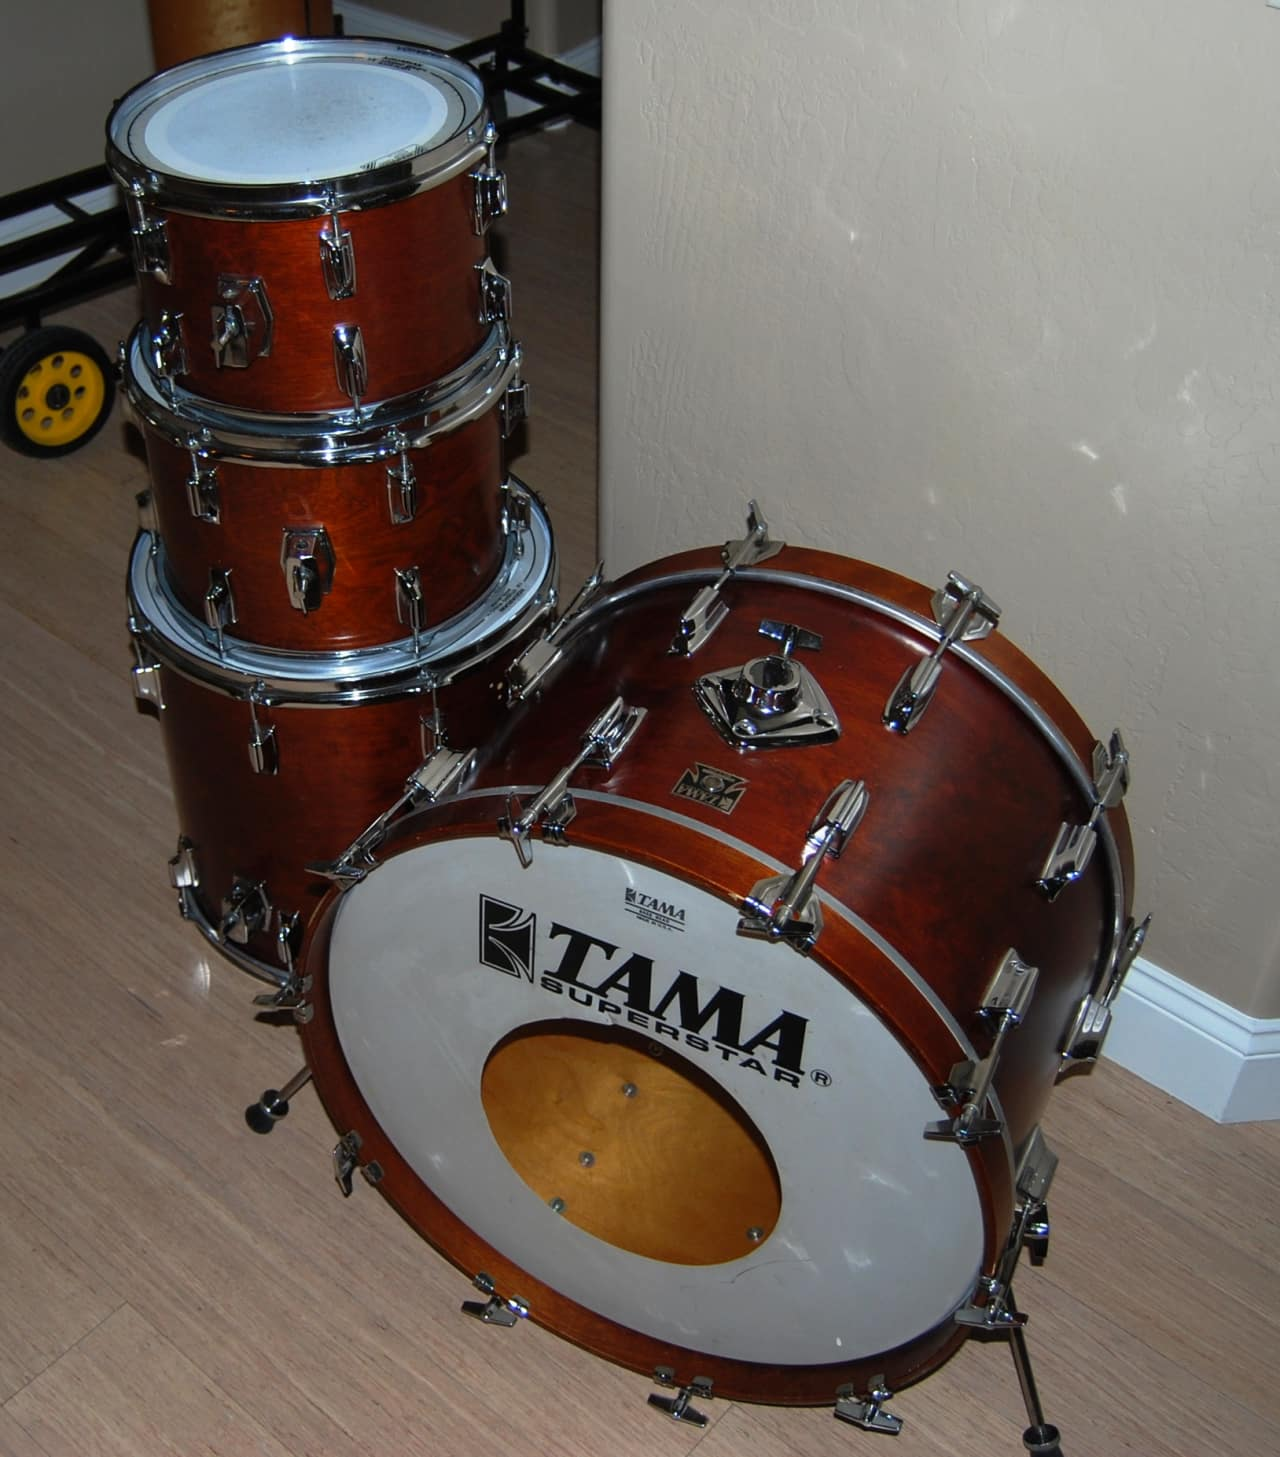 Tama superstar 9600 1979 natural walnut reverb for 13 inch floor tom